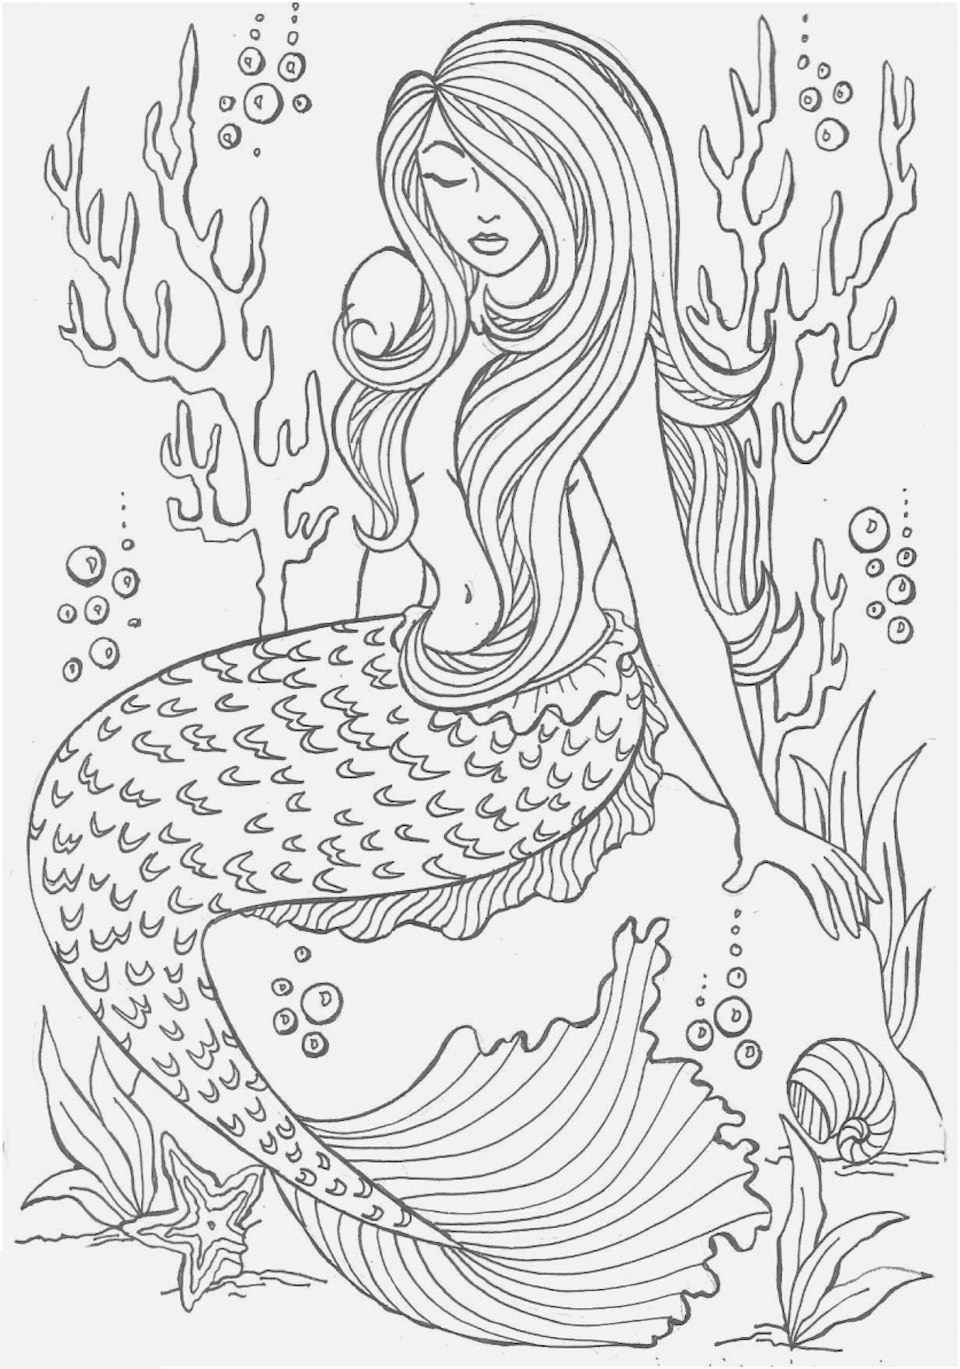 Mermaid Coloring Pages And Many Dozen More Top 10 Coloring ...